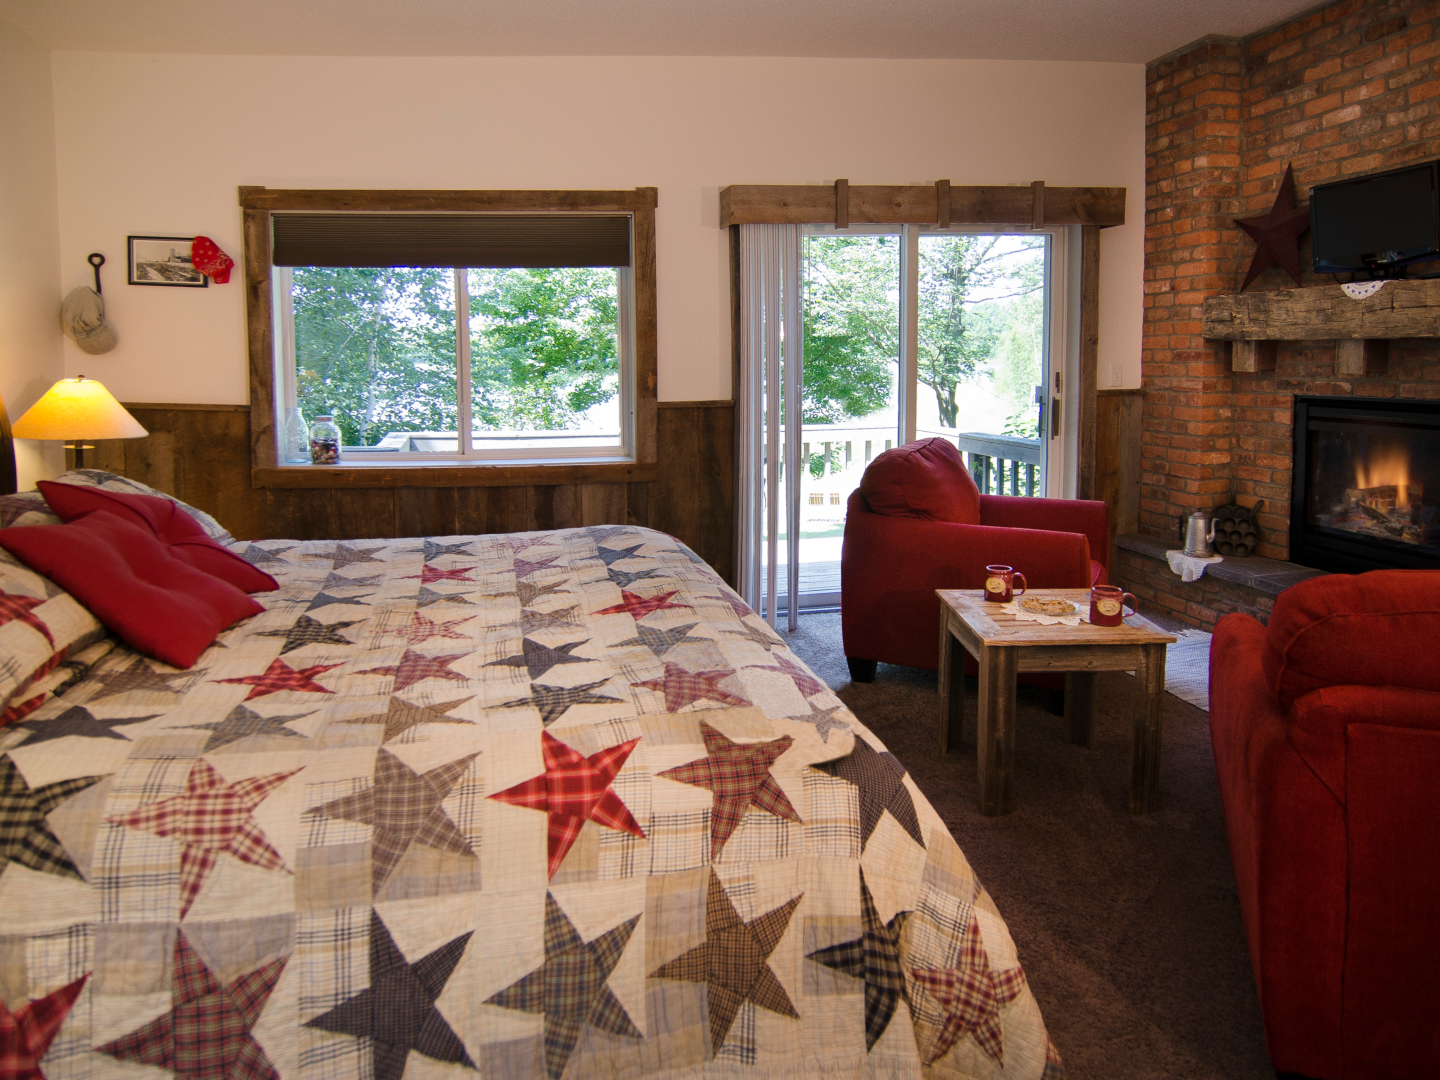 A living room with a bed and a fireplace at Canyon Road Inn.